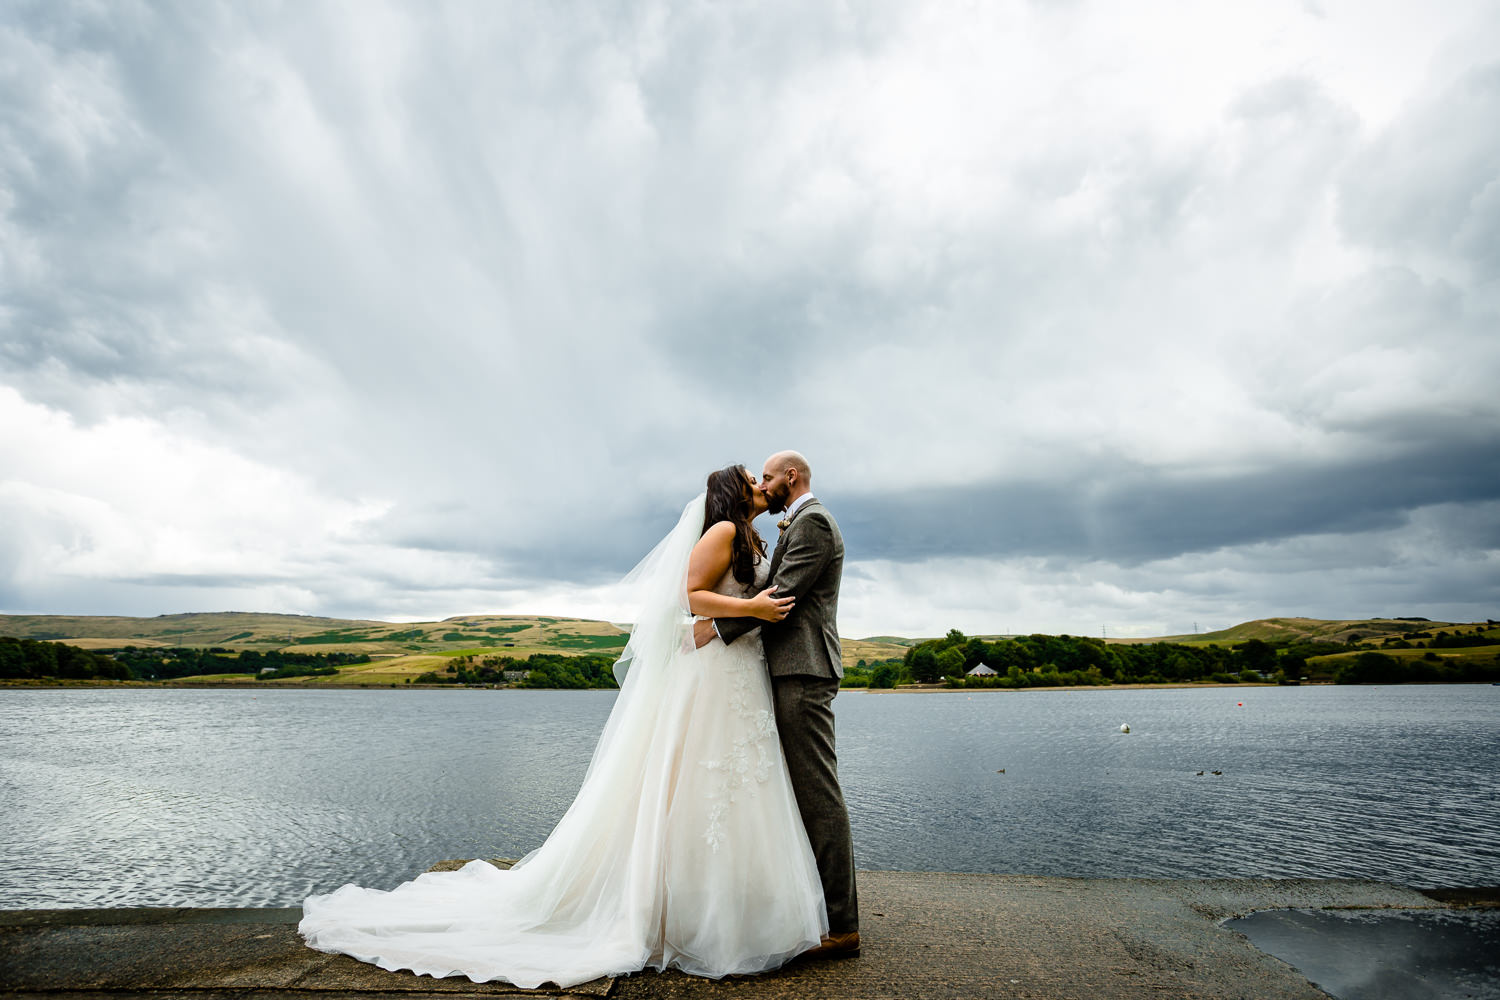 Rochdale wedding photography at Hollingworth Lake during a storm